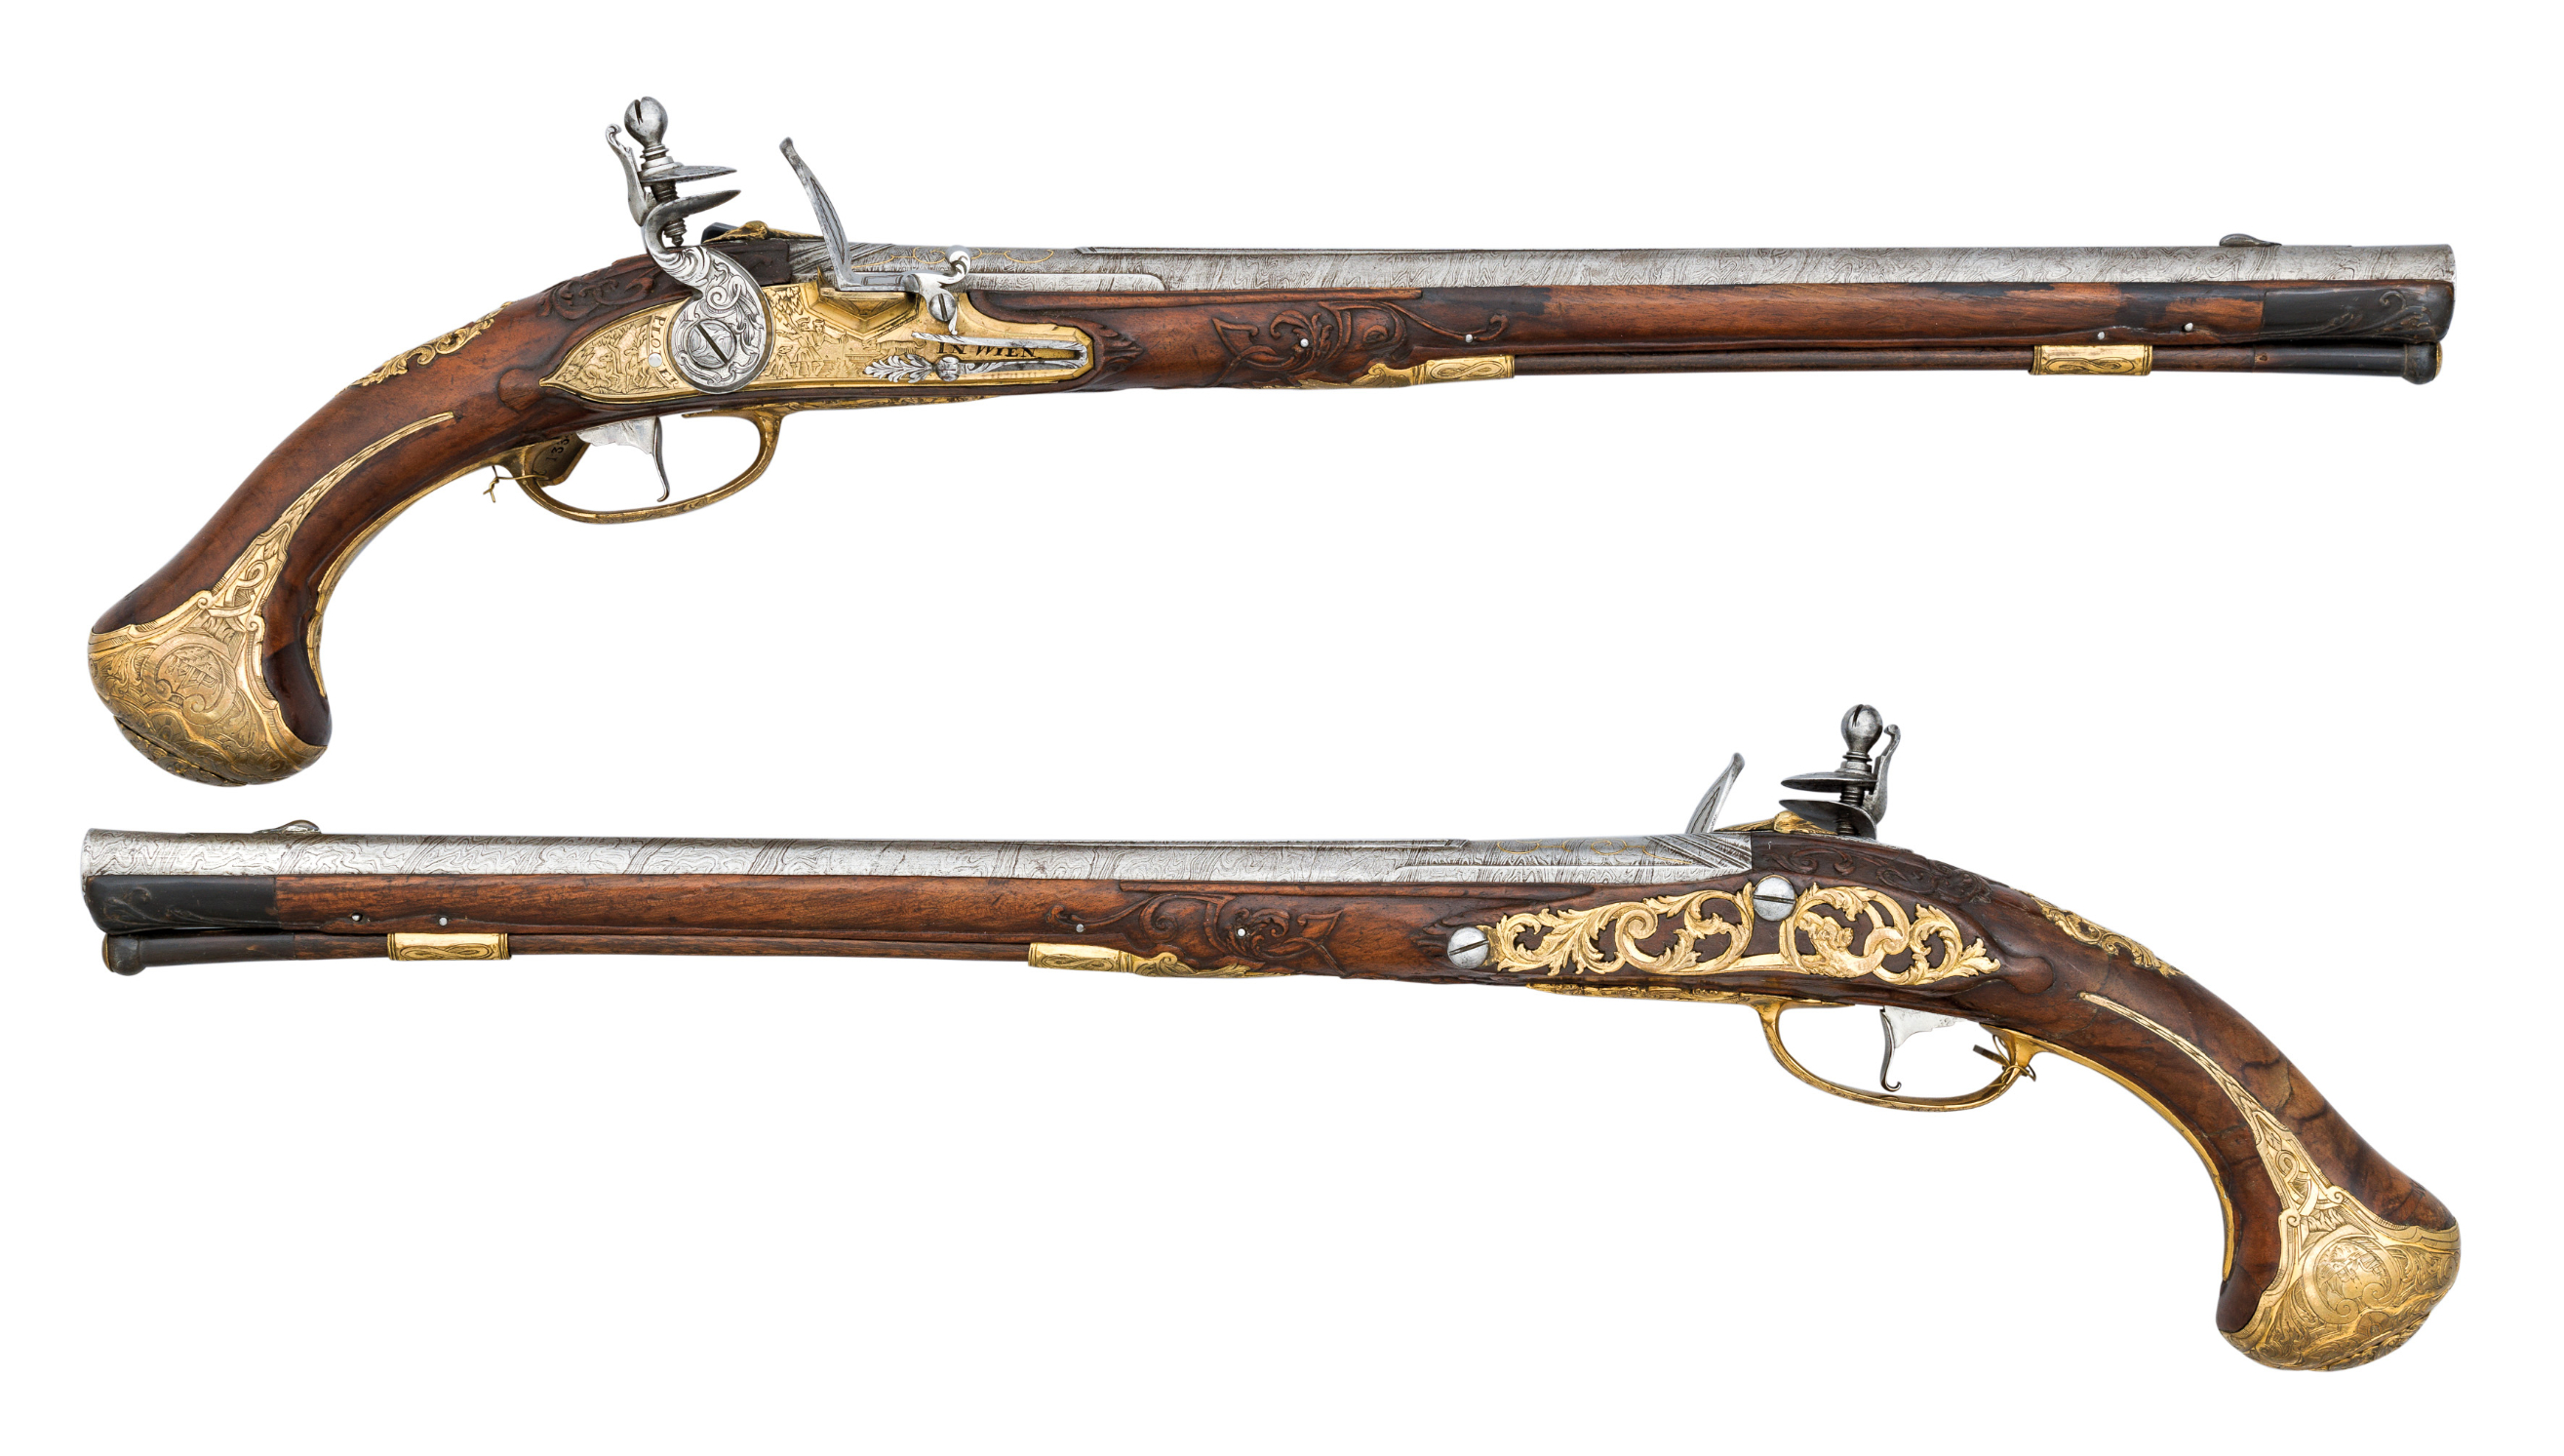 ‡ A FINE PAIR OF 16 BORE VIENNESE LONG FLINTLOCK HOLSTER PISTOLS MADE FOR A MEMBER OF THE BRUNSWICK